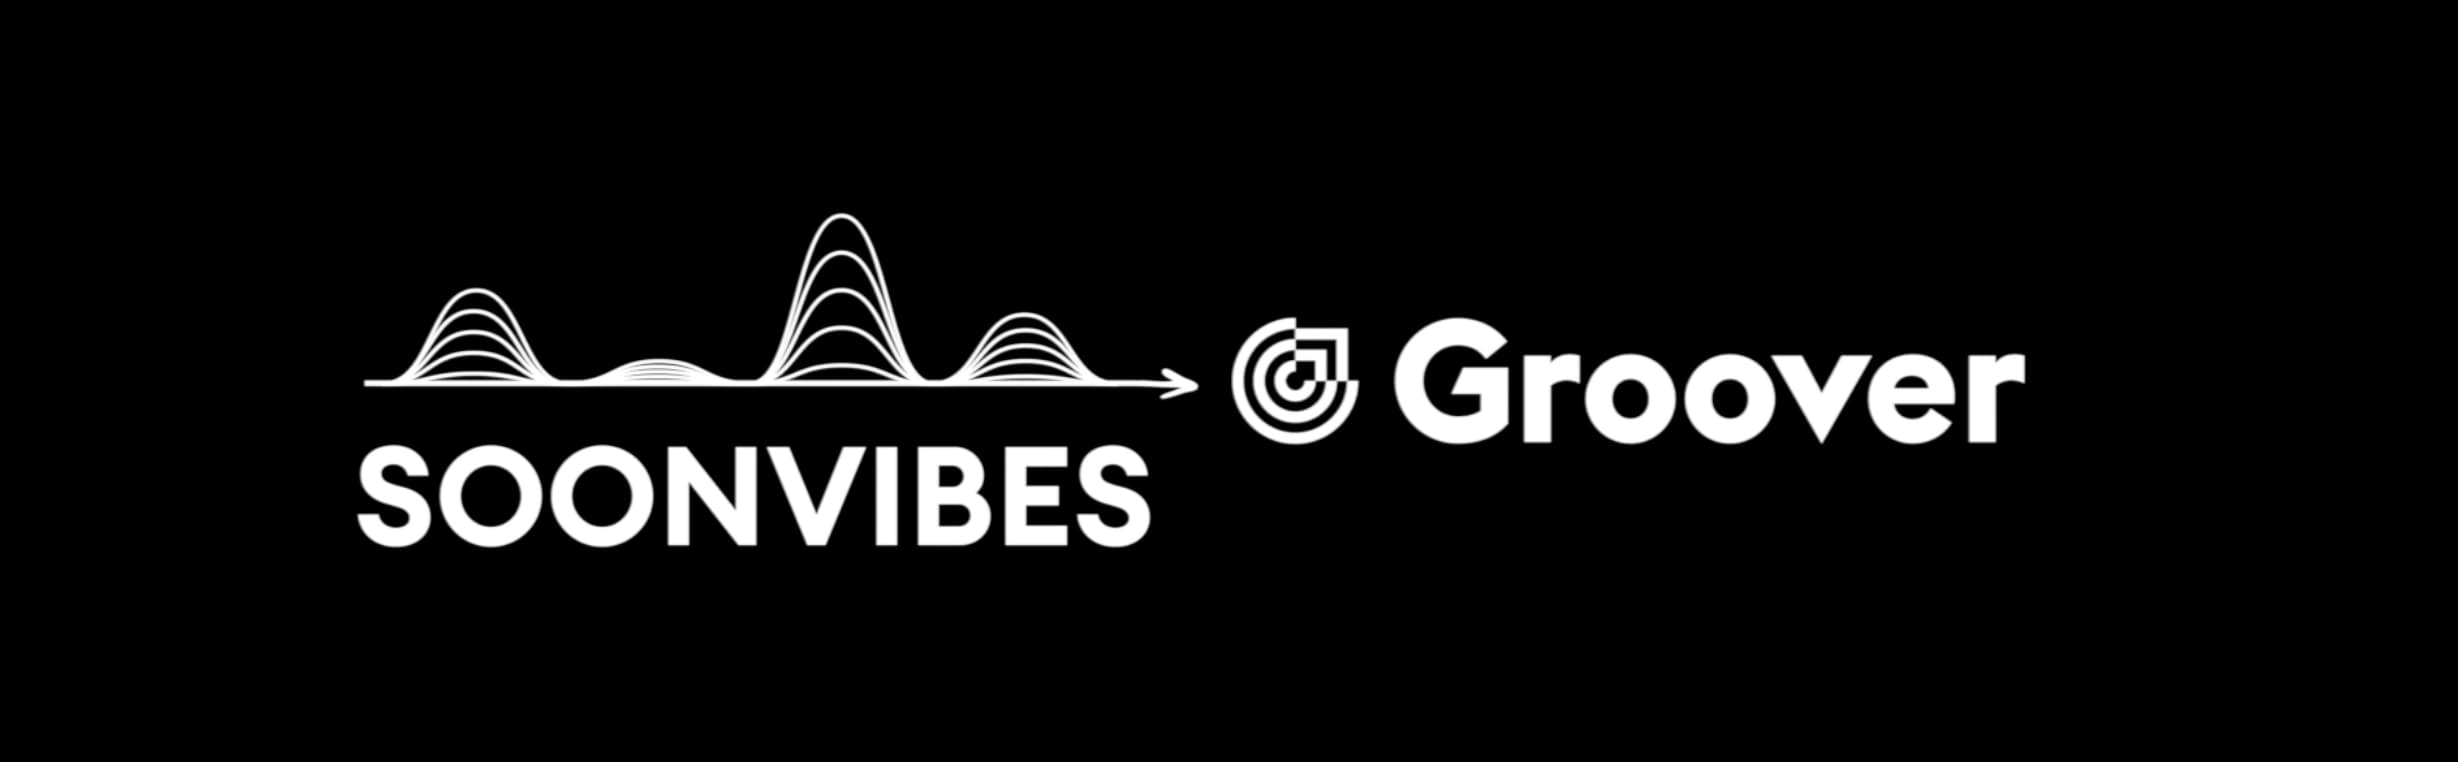 It's official as of March 31, 2021, Groover acquires Soonvibes and accelerates in electronic music